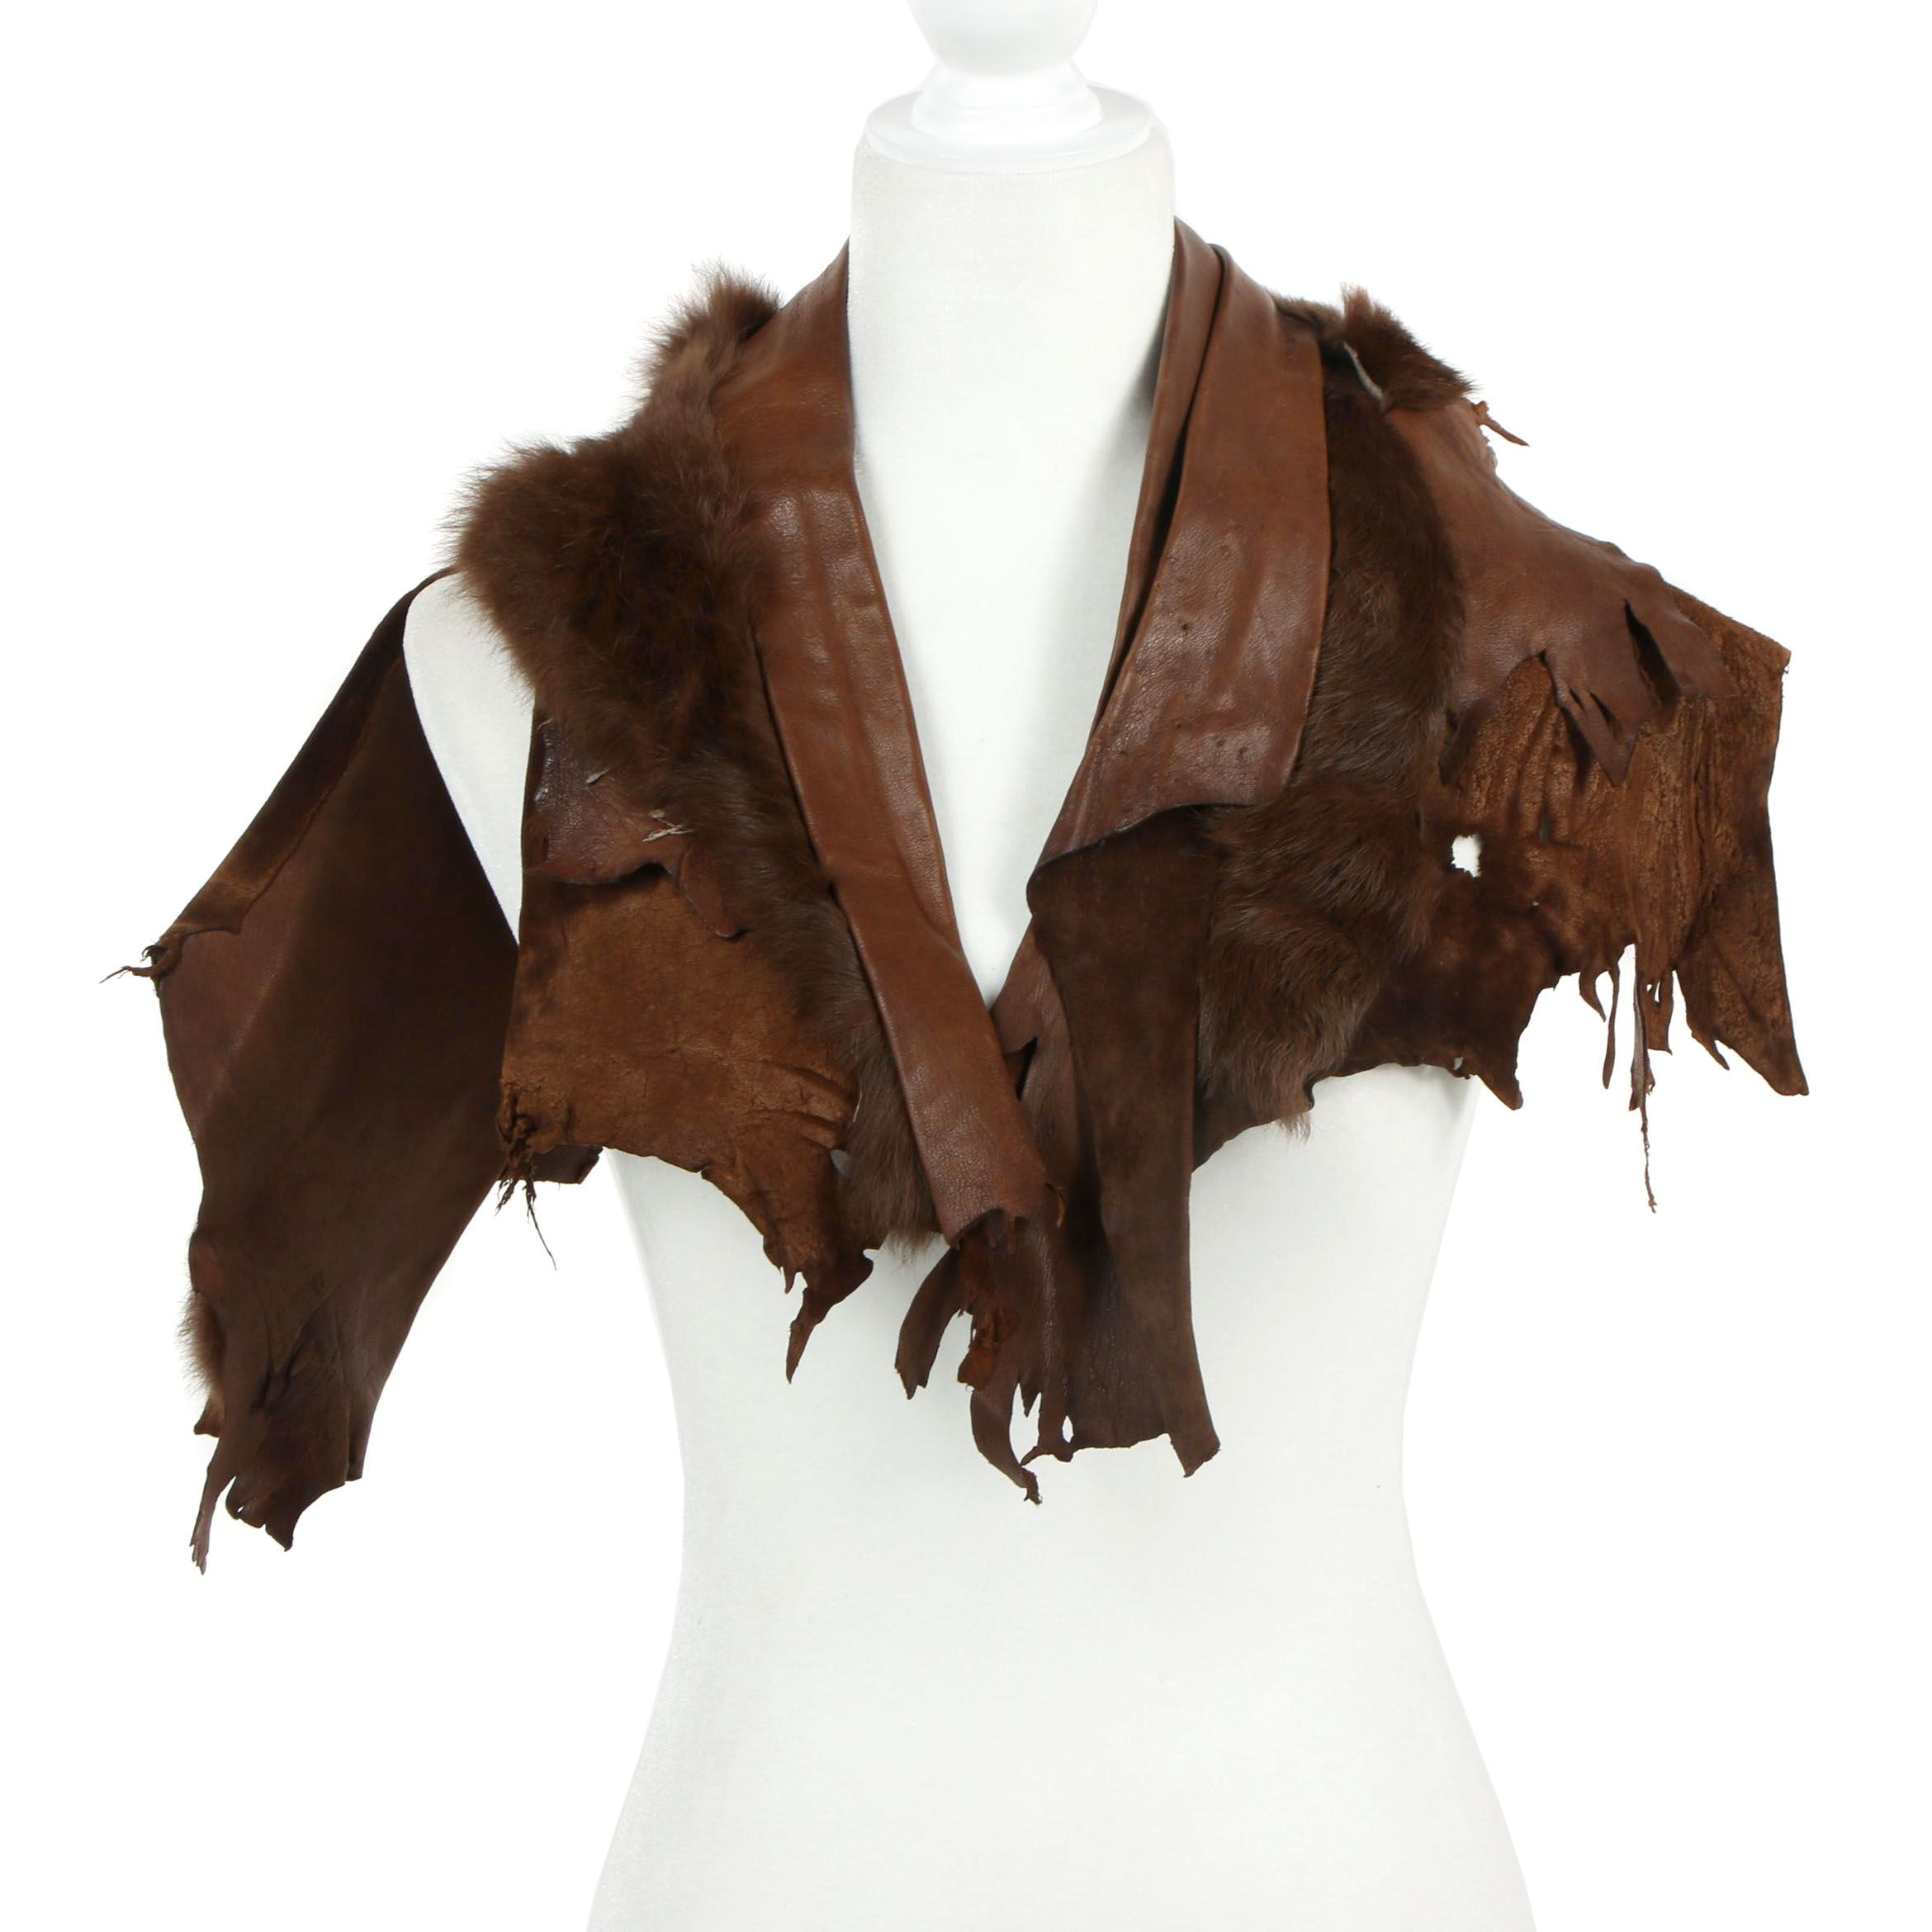 Handmade Dyed Leather and Rabbit Fur Costume Accessory